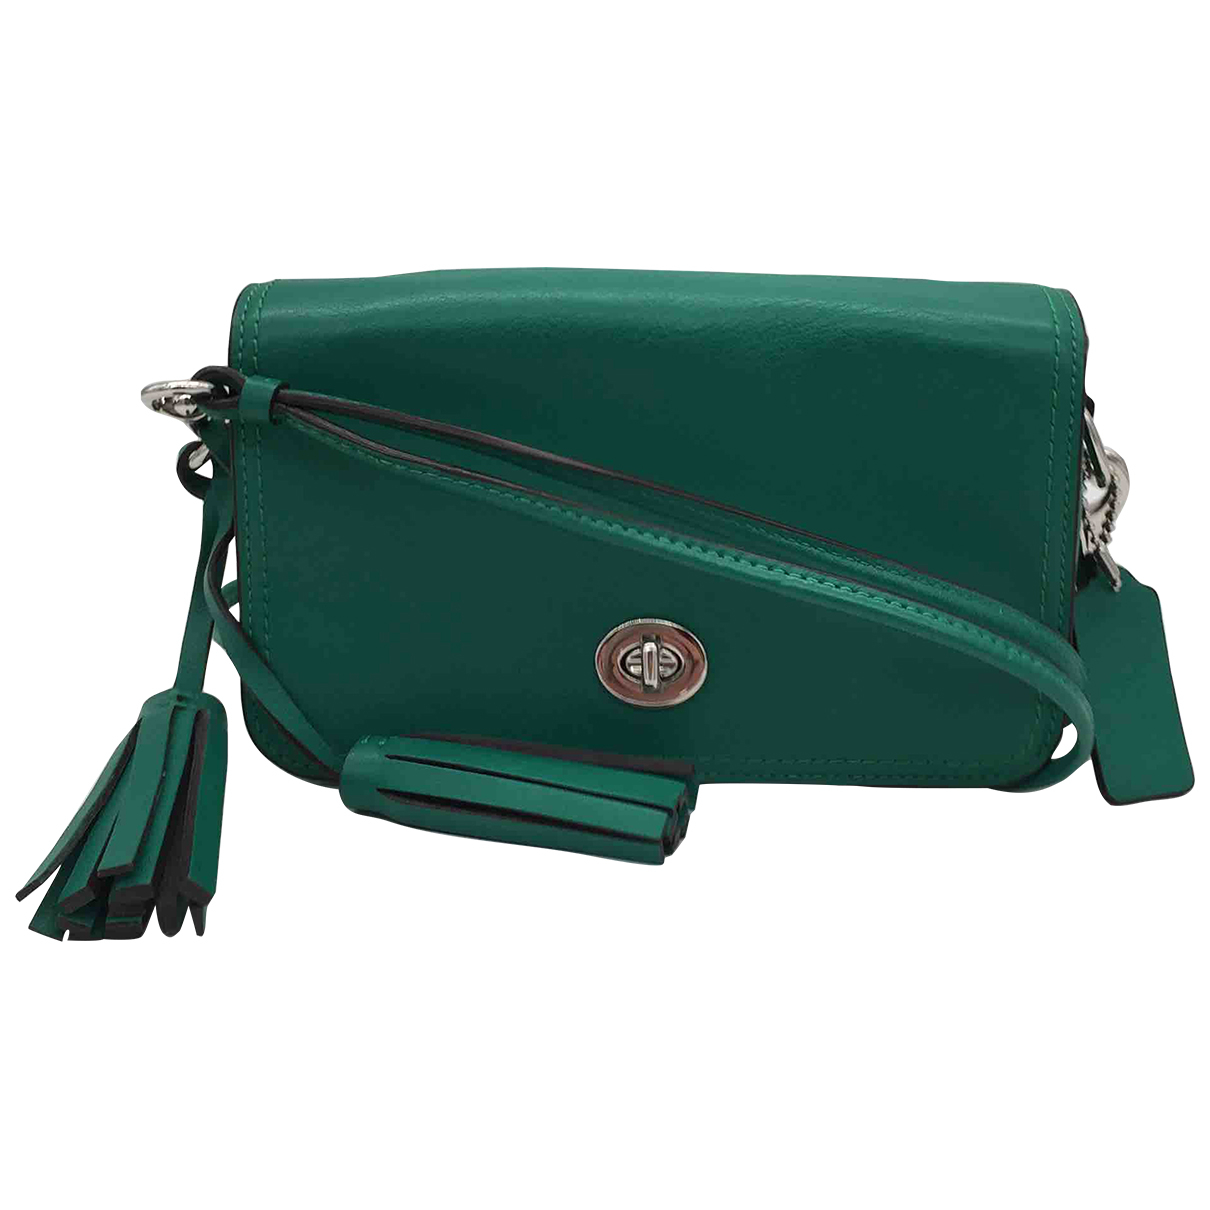 Coach \N Clutch in  Gruen Leder